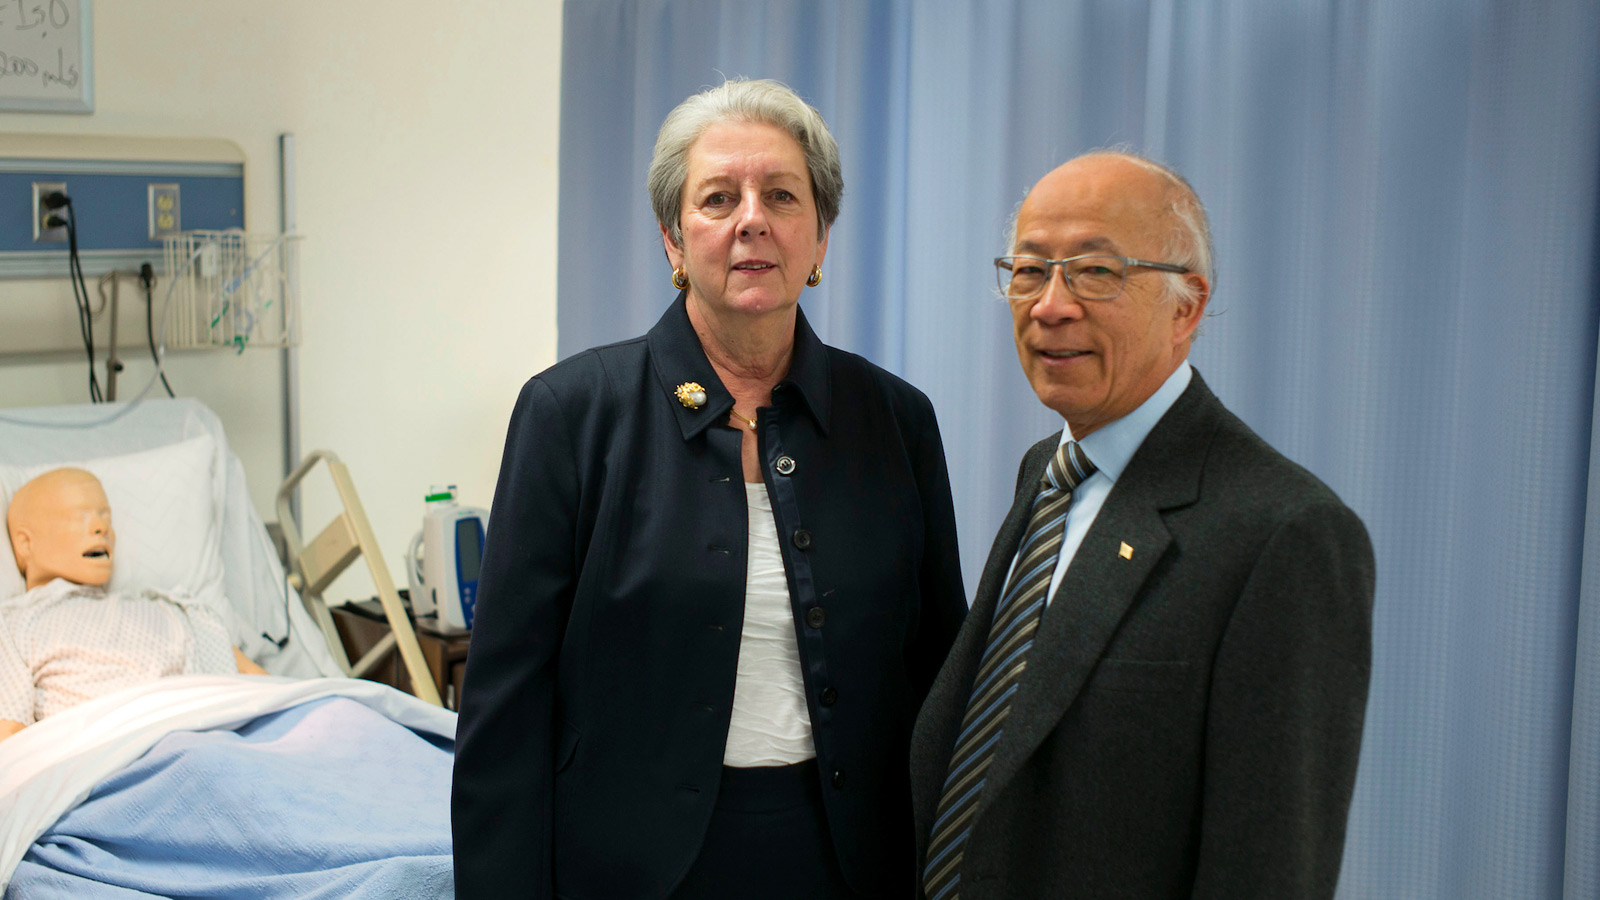 Patricia A. Chin and Dr. William Chin in the Nursing Simulation Lab